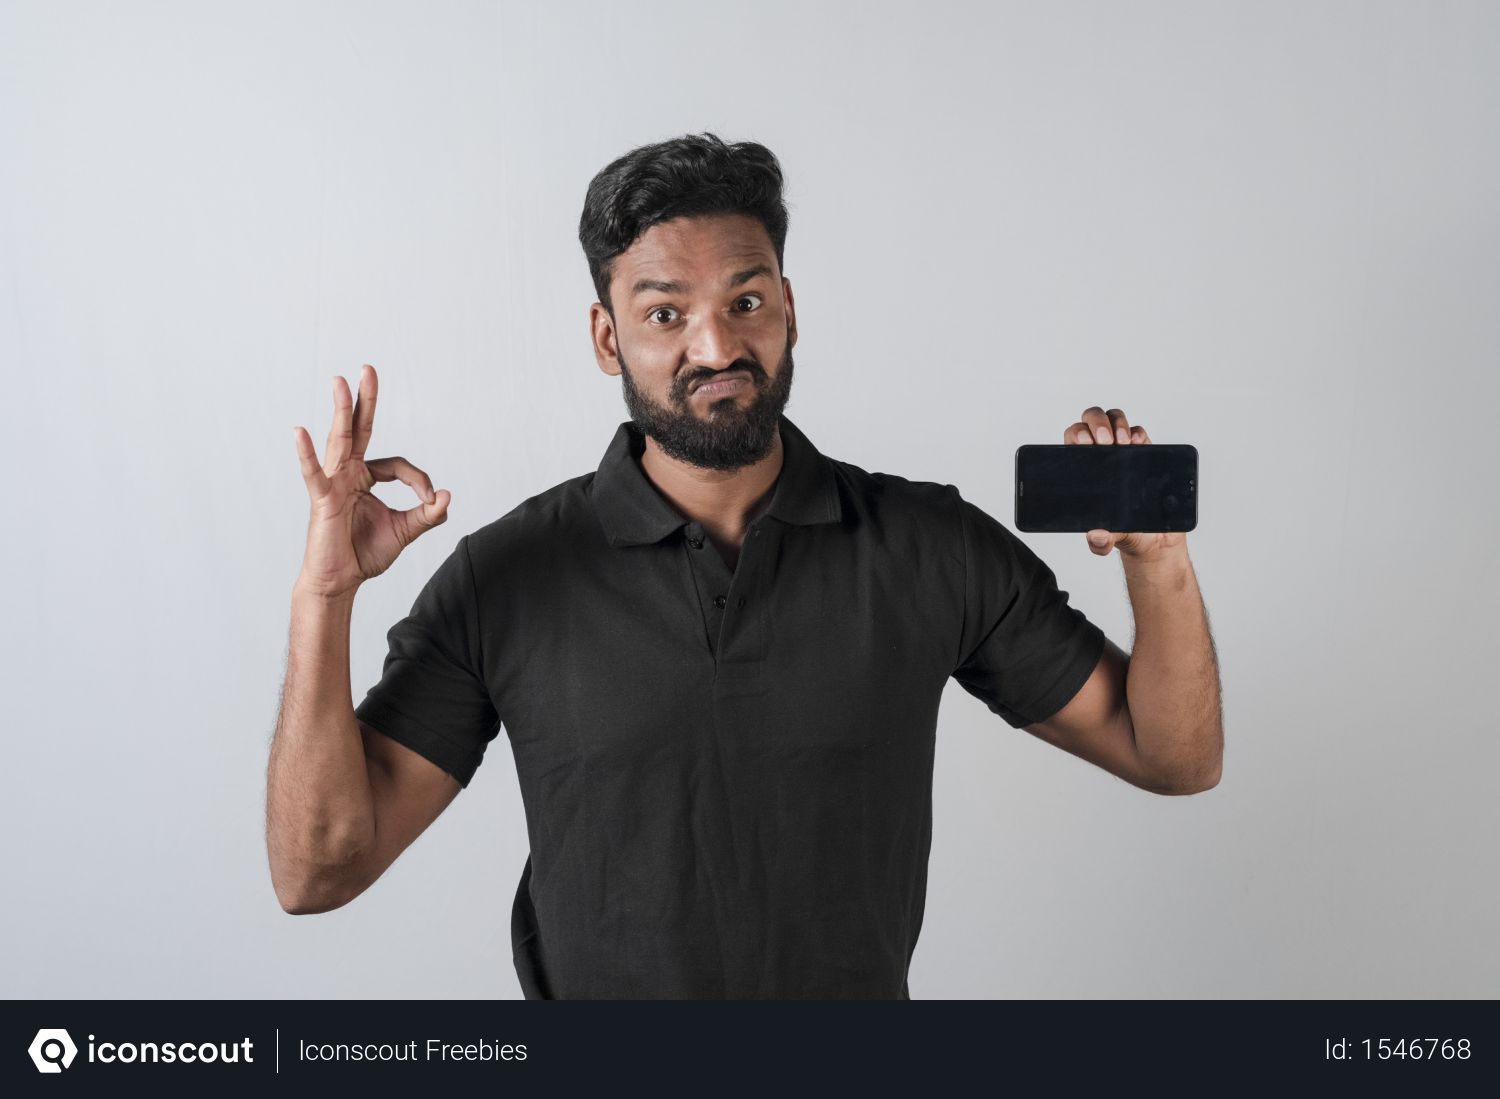 Free Indian Man Holding His Smartphone With Blank Screen With Ok Hand Gesture Photo Download In Png Jpg Format Indian Man Man Photo